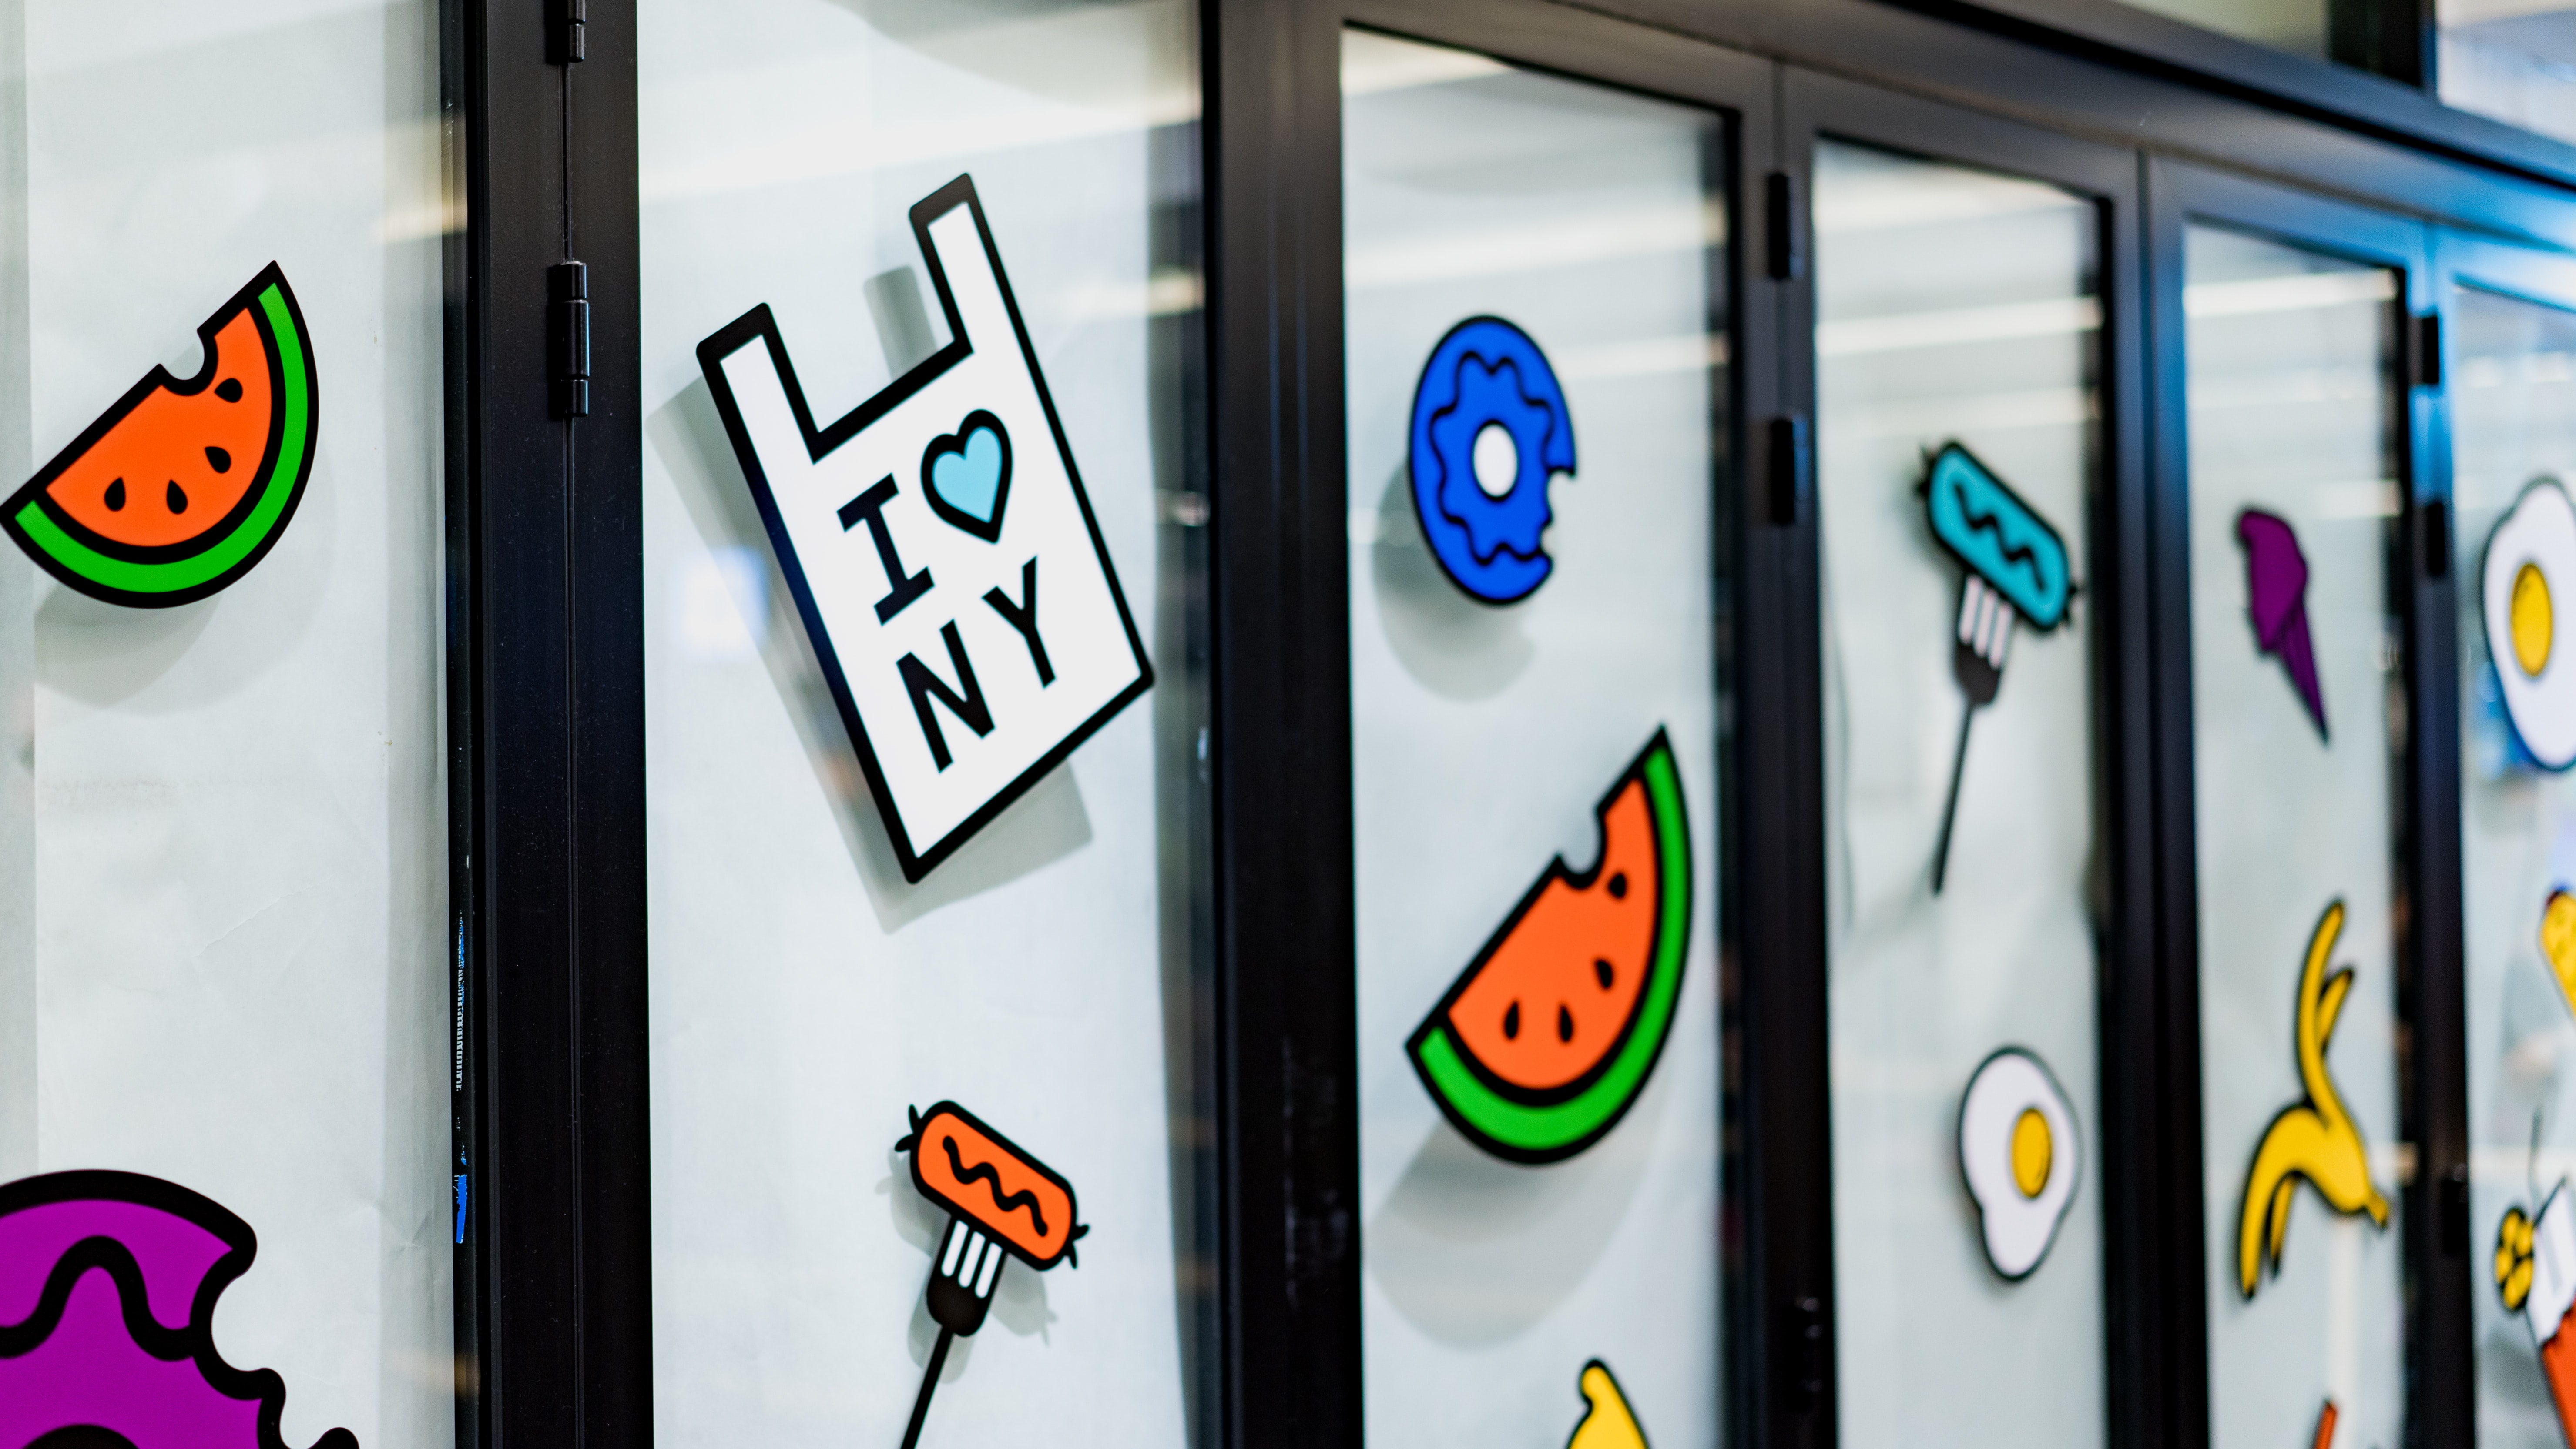 Windows with dark frames and cartoon fruit stickers in Columbus Circle